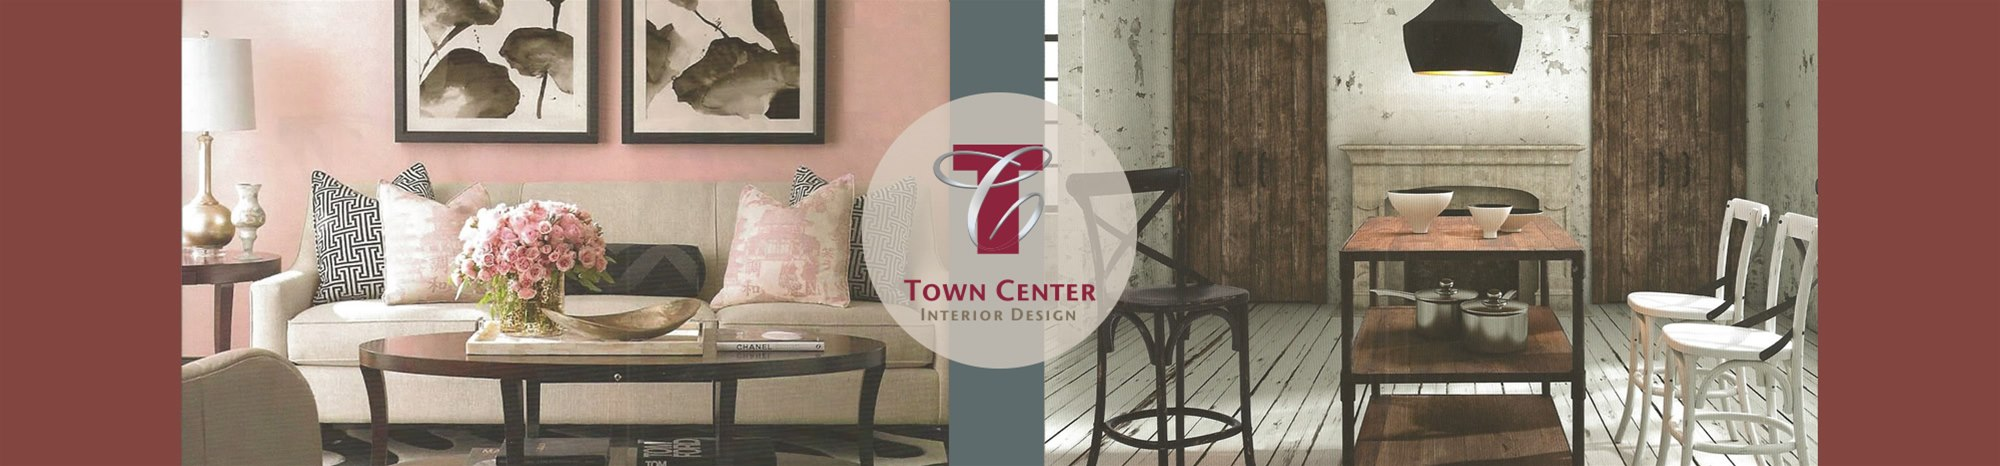 58 town center interior design las vegas photo of for Window design group simi valley